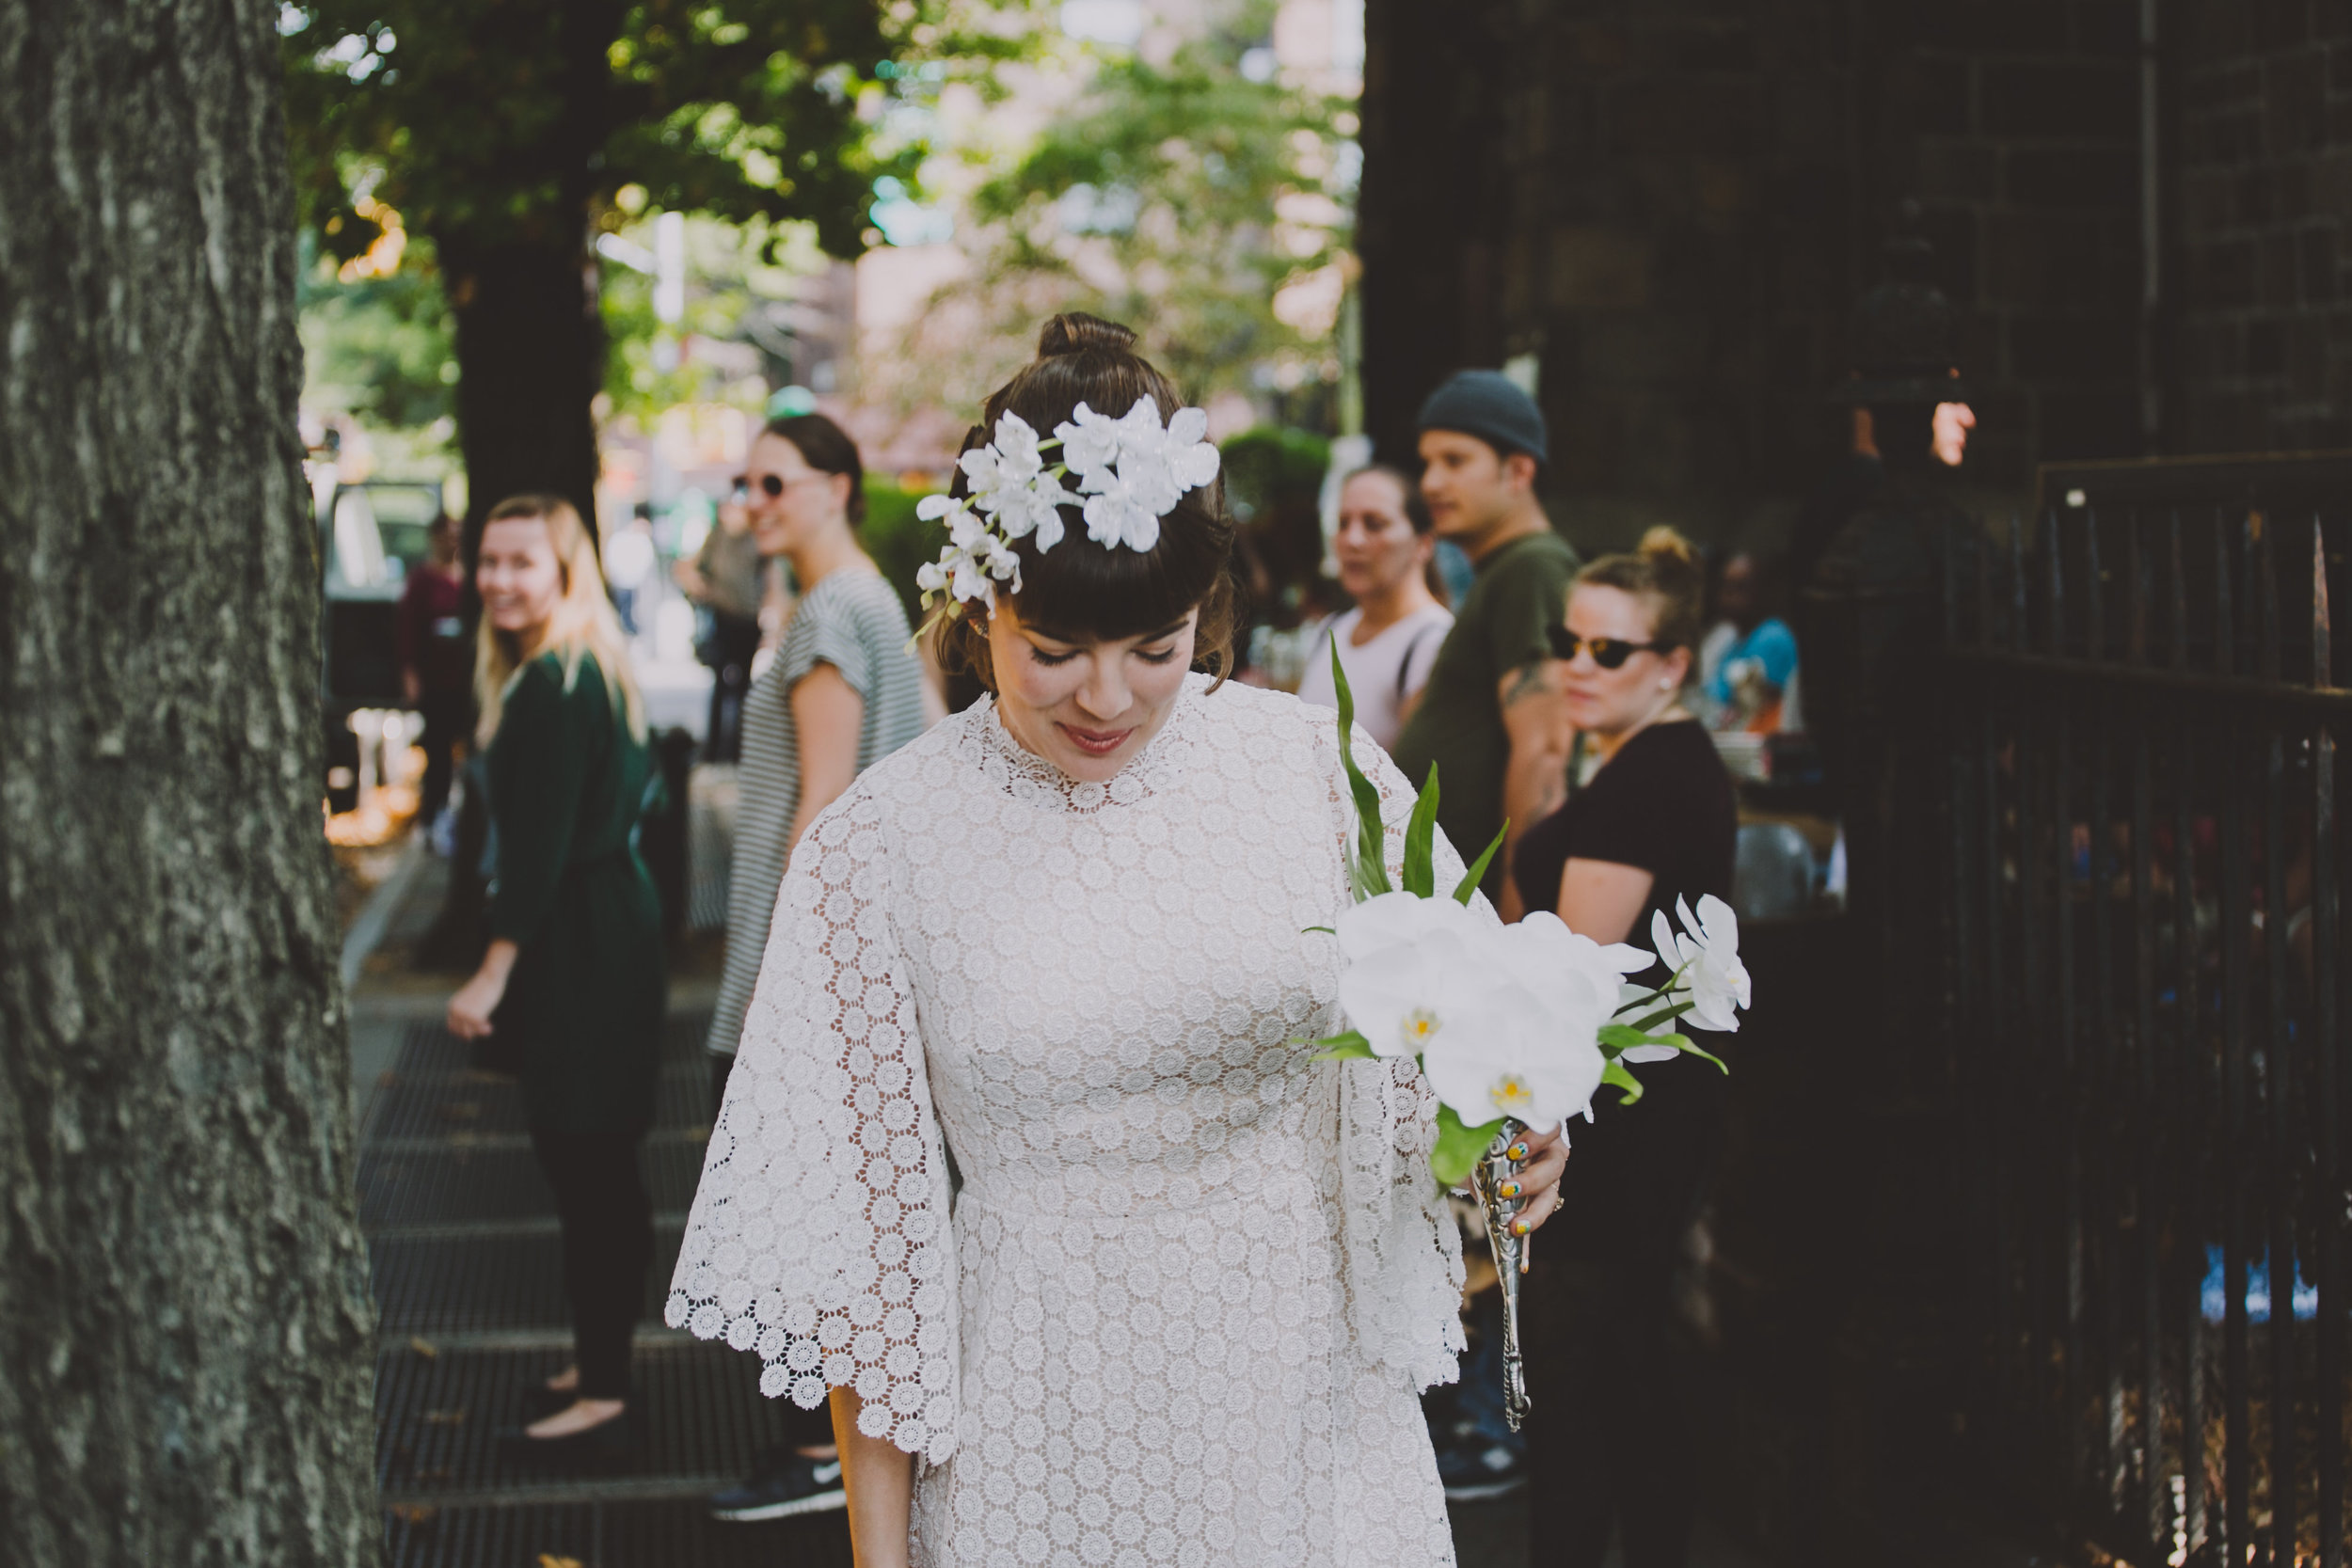 Robertas_Bushwick_Wedding_Tiki_Photography310.JPG